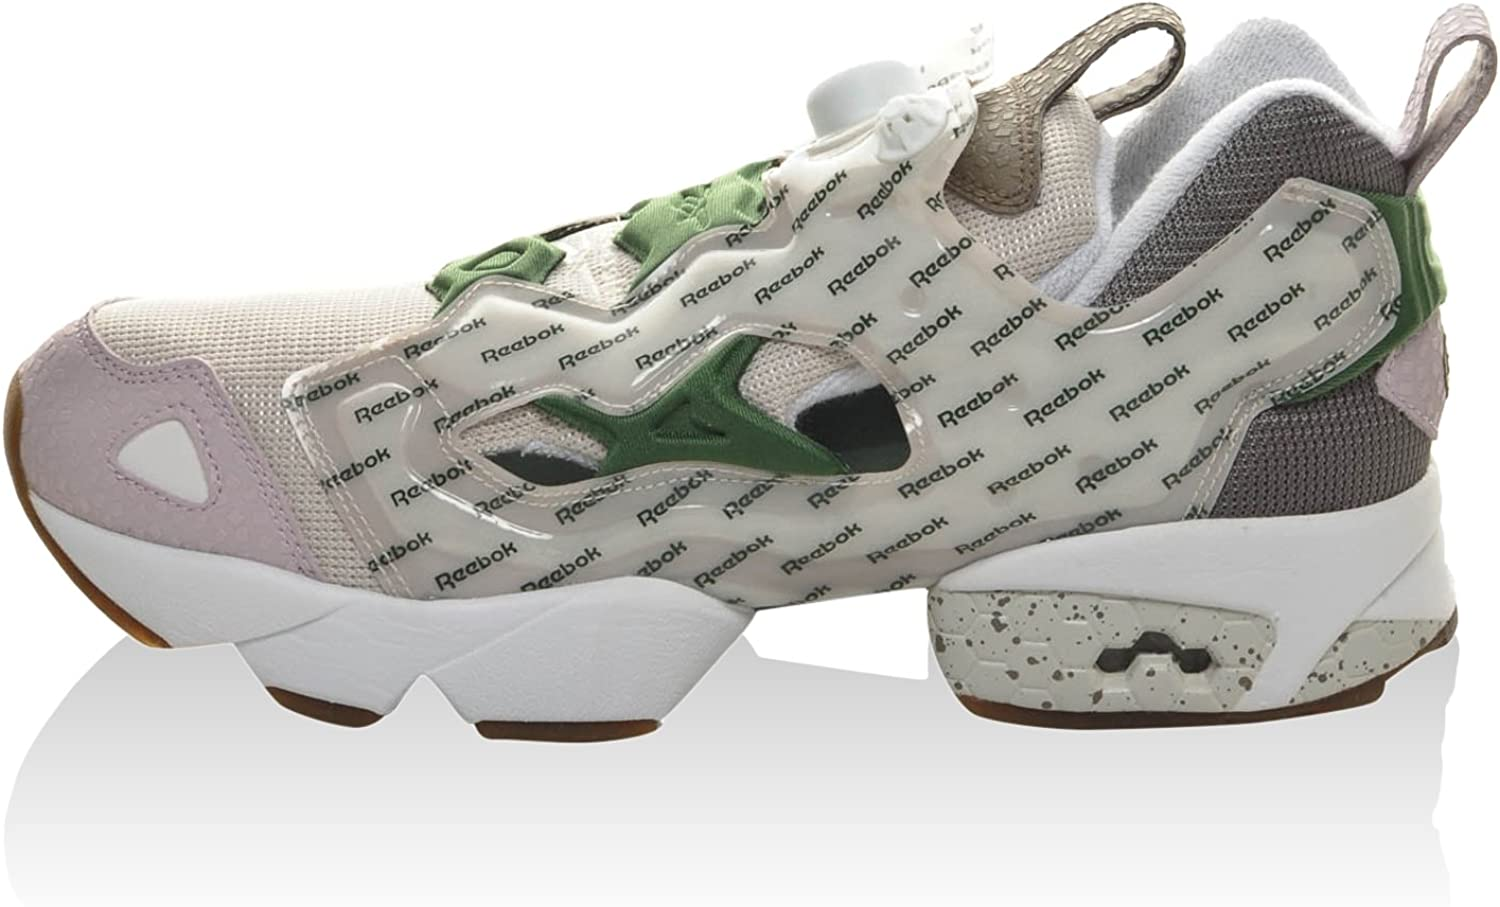 REEBOK Zapatillas GS Pump Fury Multicolor EU 39 (US 7): Amazon.es: Zapatos y complementos